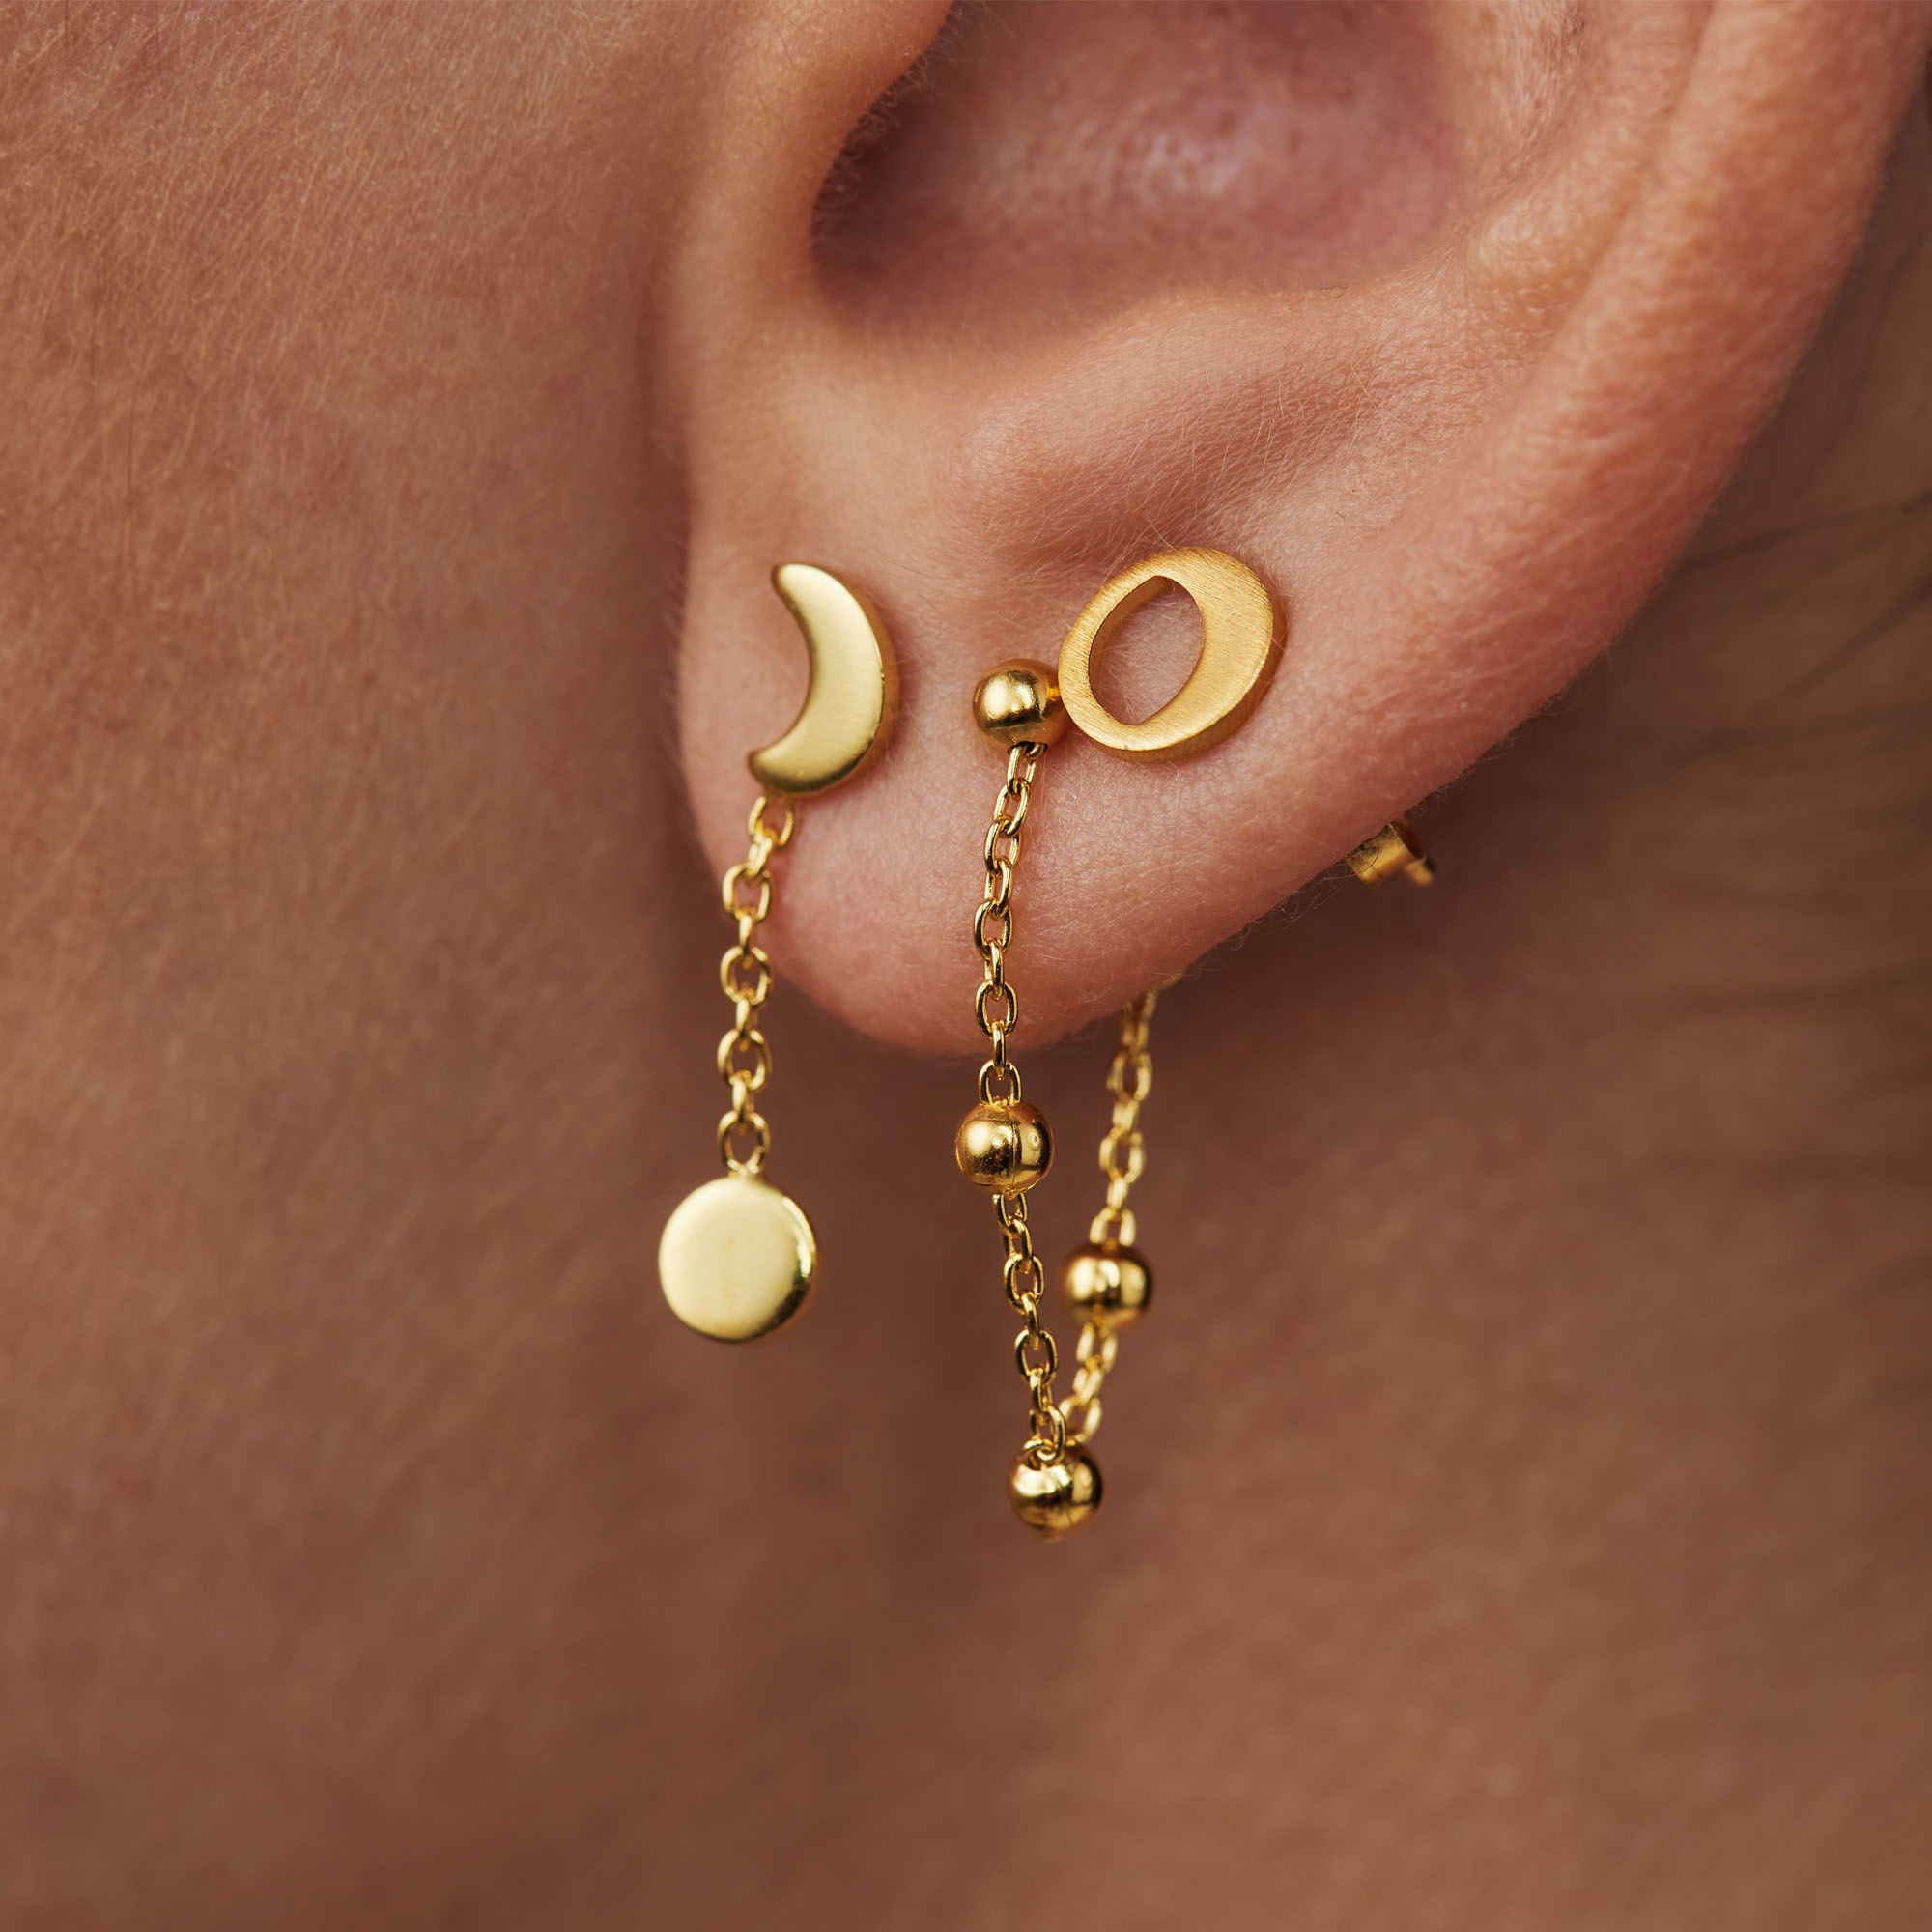 Violet Hamden Luna 925 sterling silver gold colored ear studs with moons